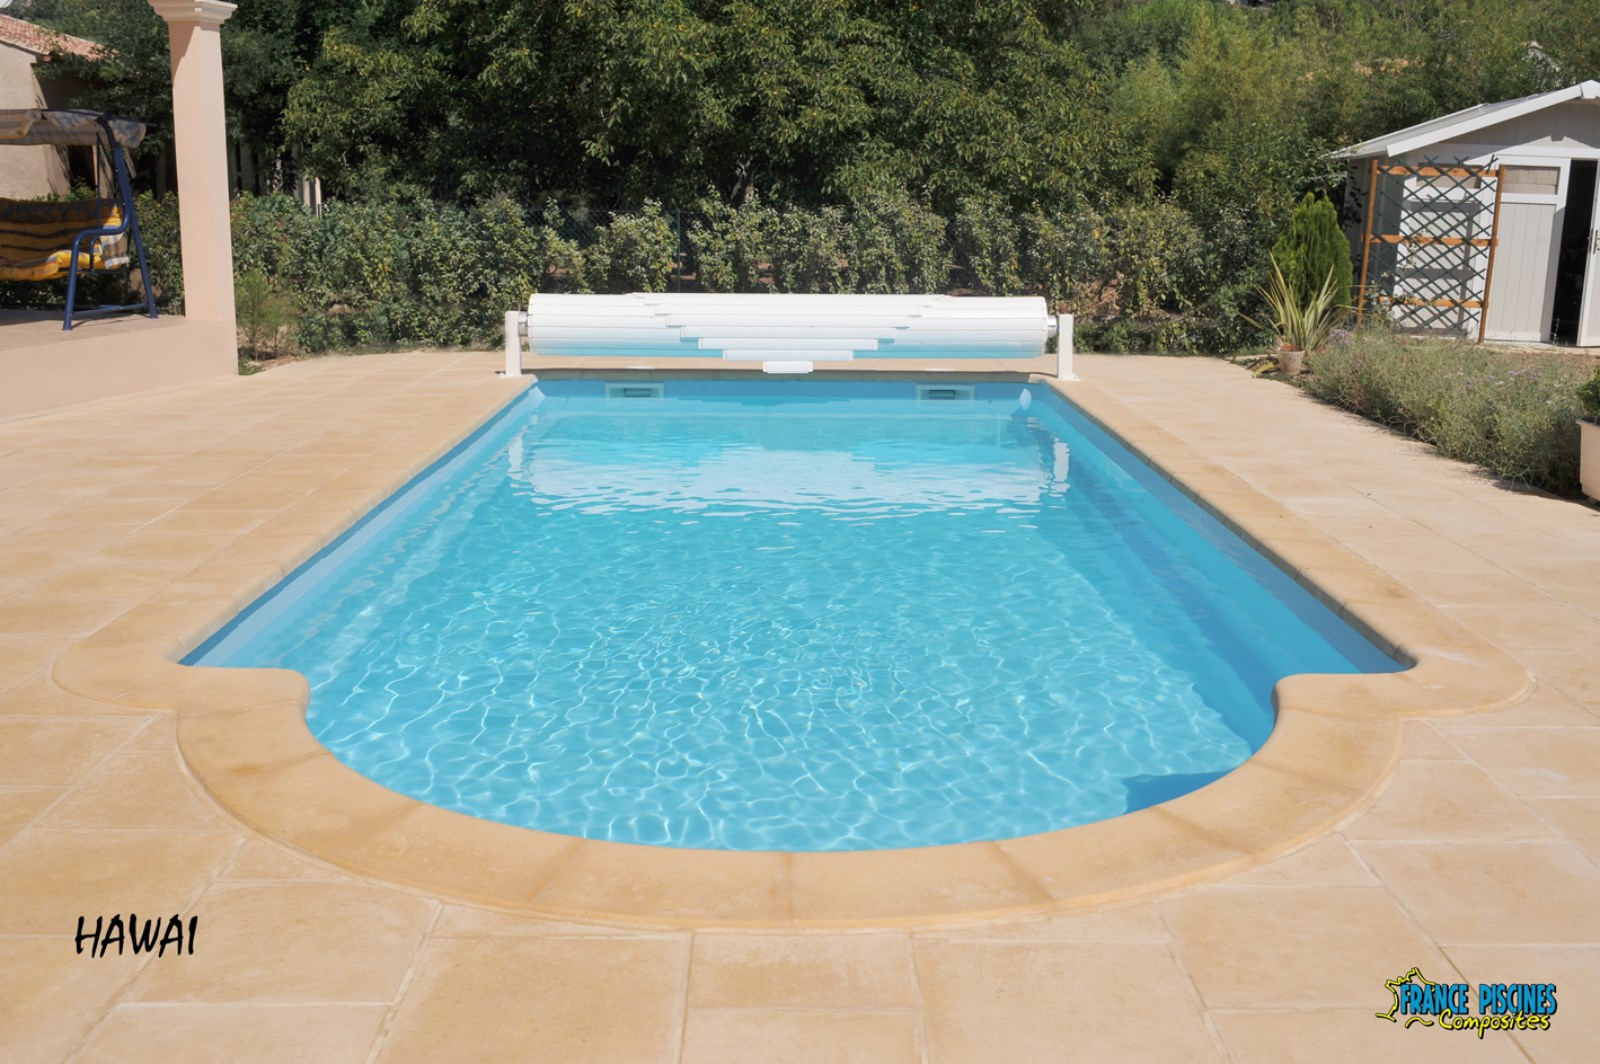 Piscine coque 9 4 rw51 jornalagora for Installation piscine coque